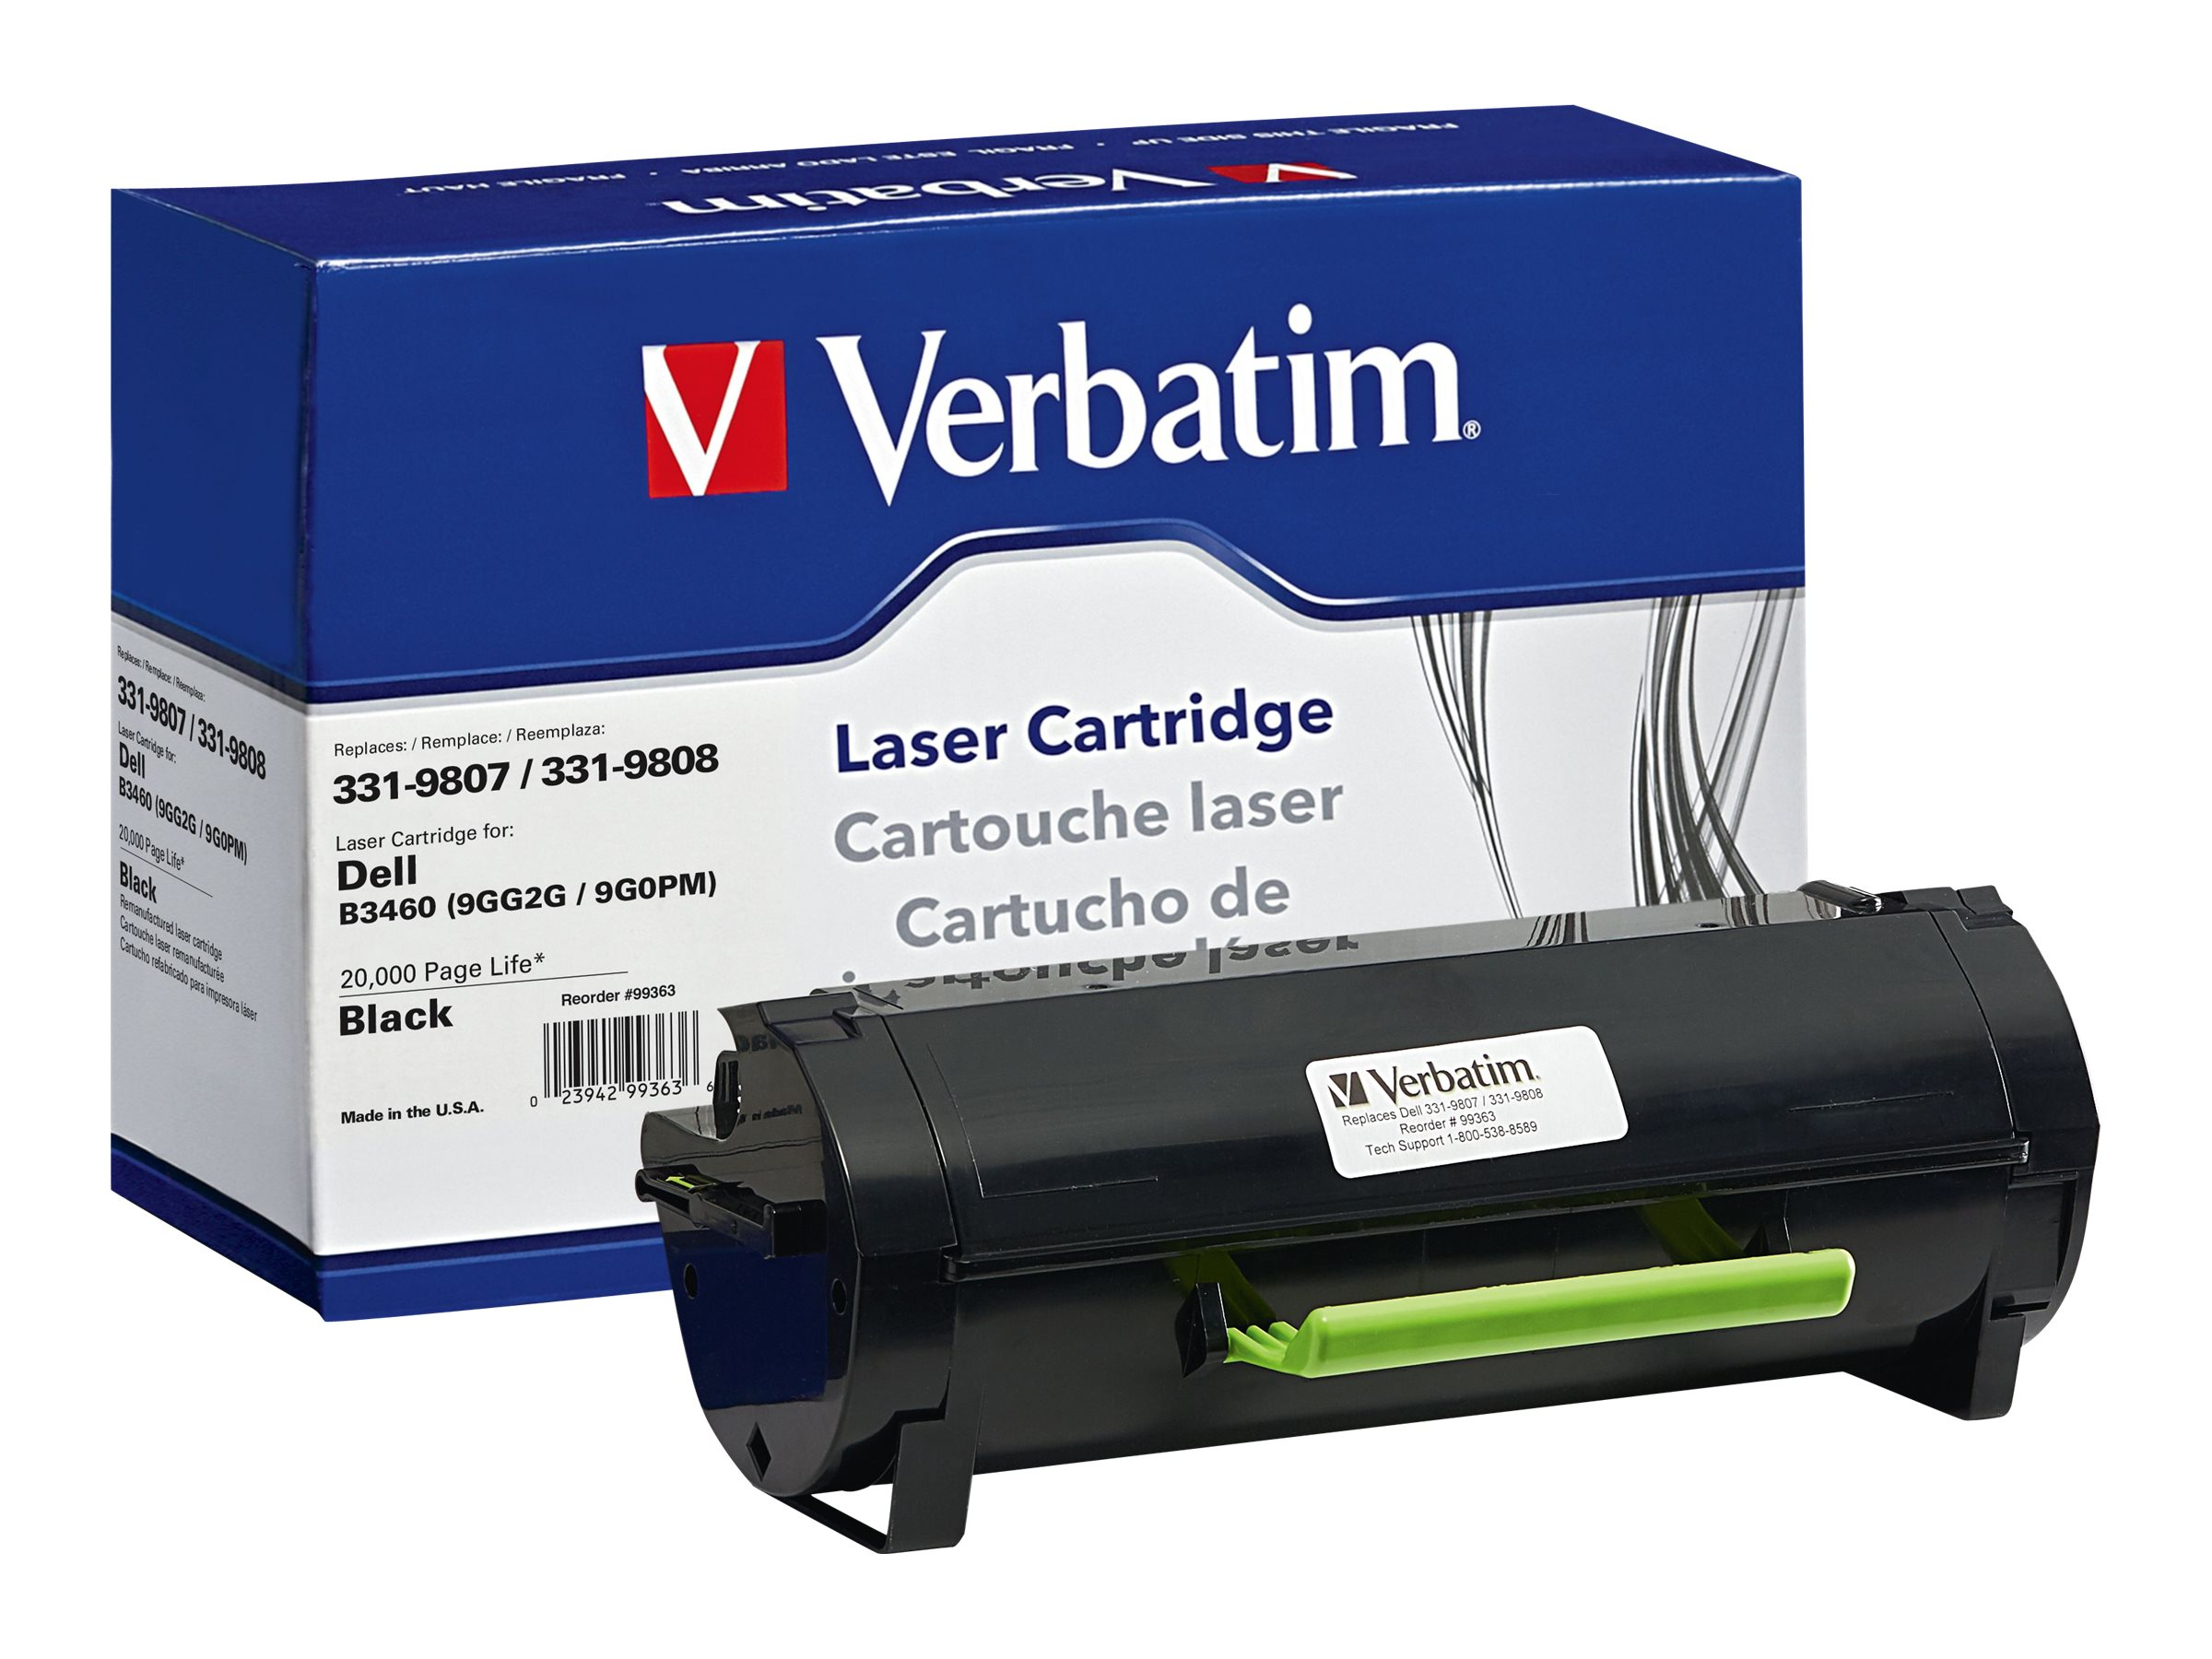 Verbatim 331-9807 331-9808 Toner Cartridge for Dell, 99363